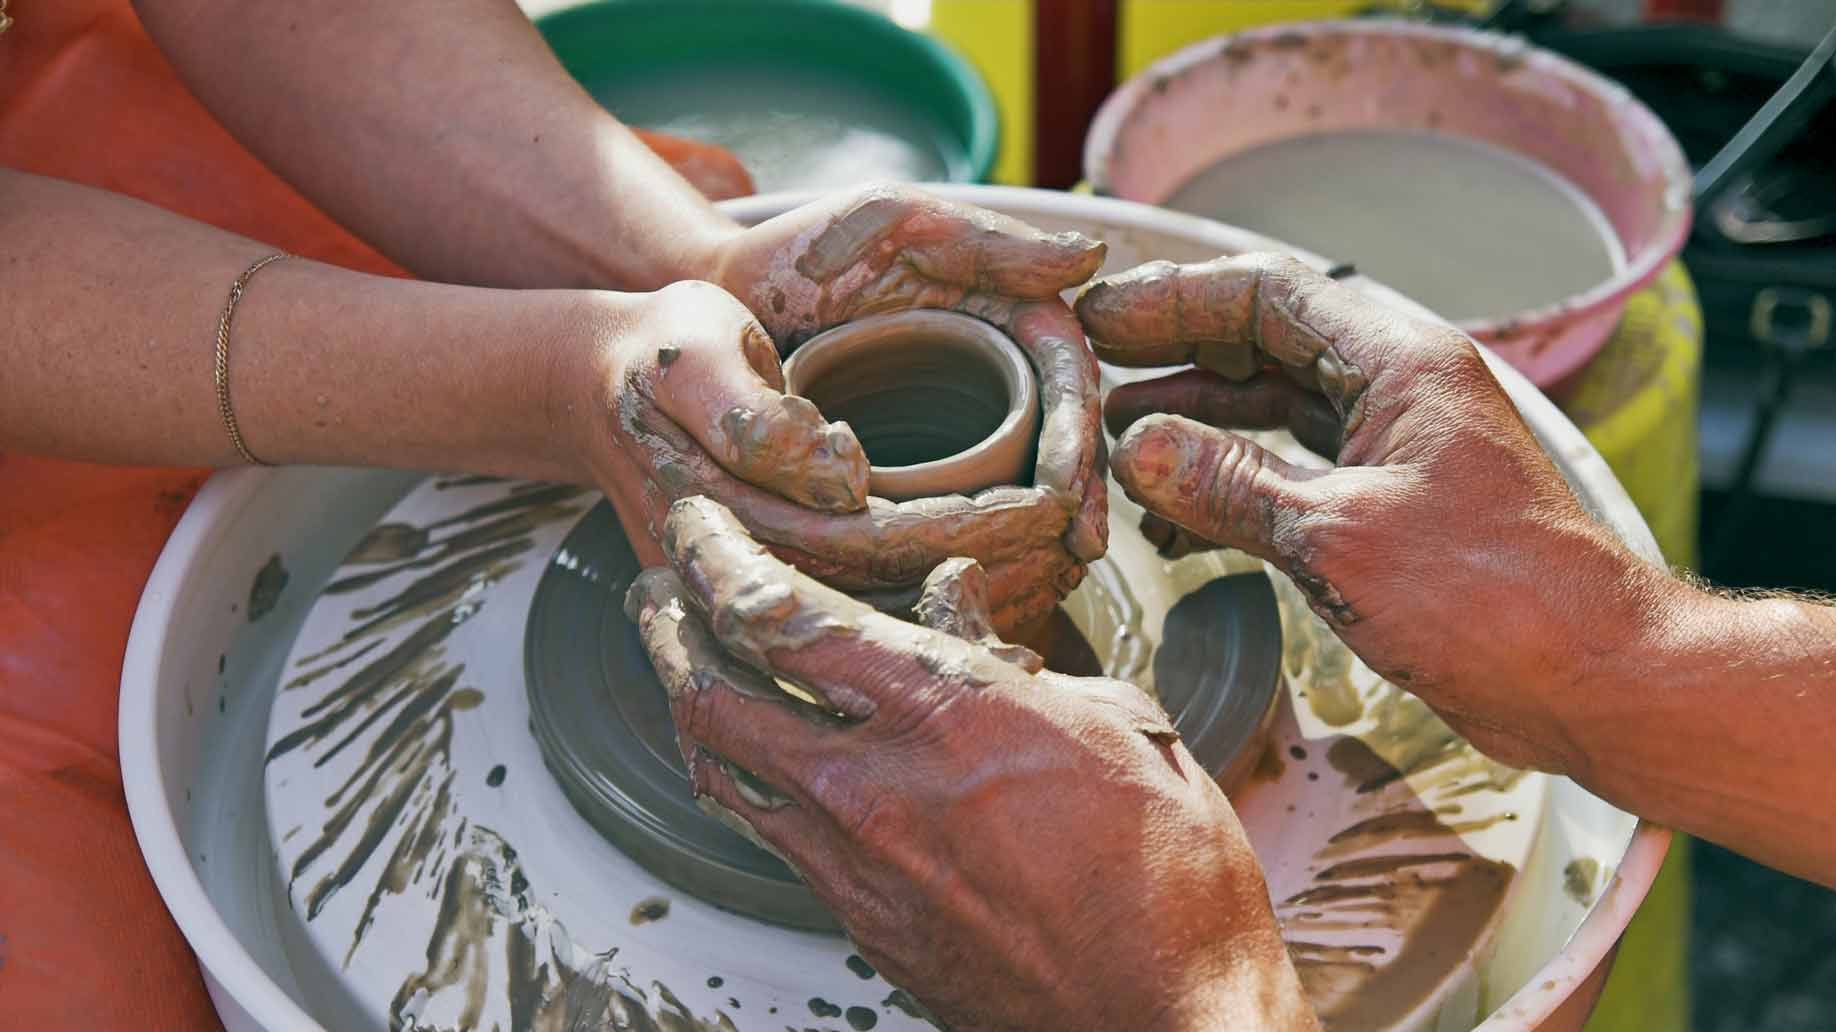 a couple on a date making clay pottery